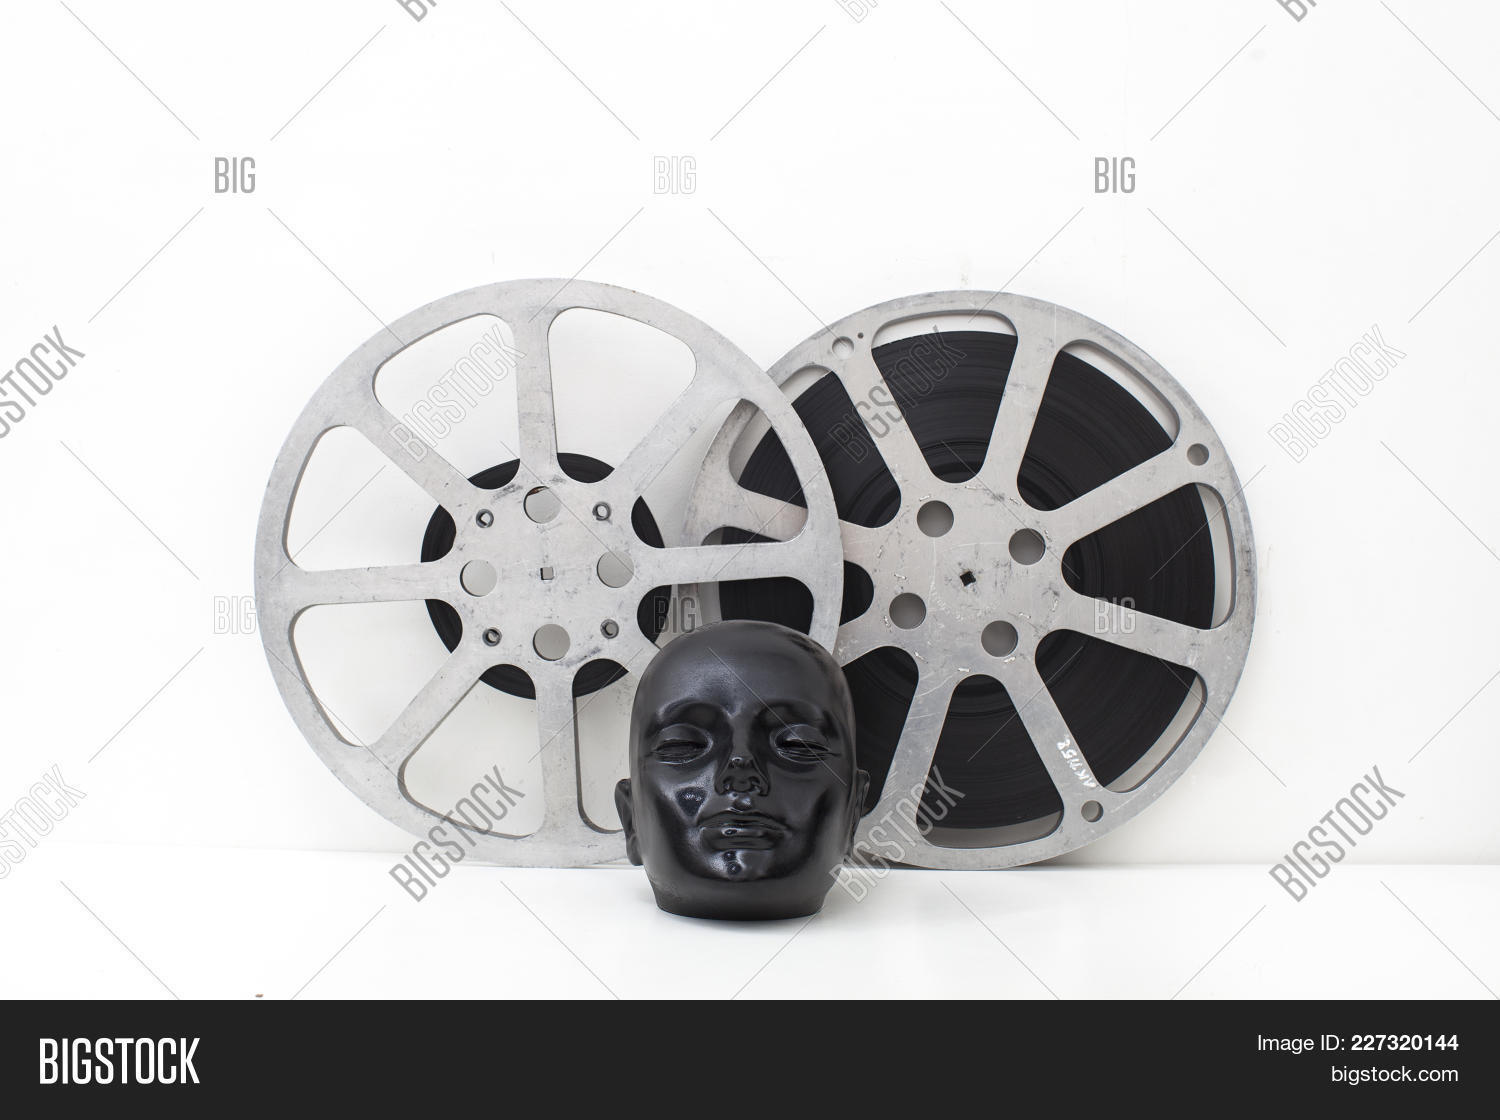 Film reels old movies image photo free trial bigstock film reels of old movies and black dummy head on white backgroundncept cinema altavistaventures Choice Image